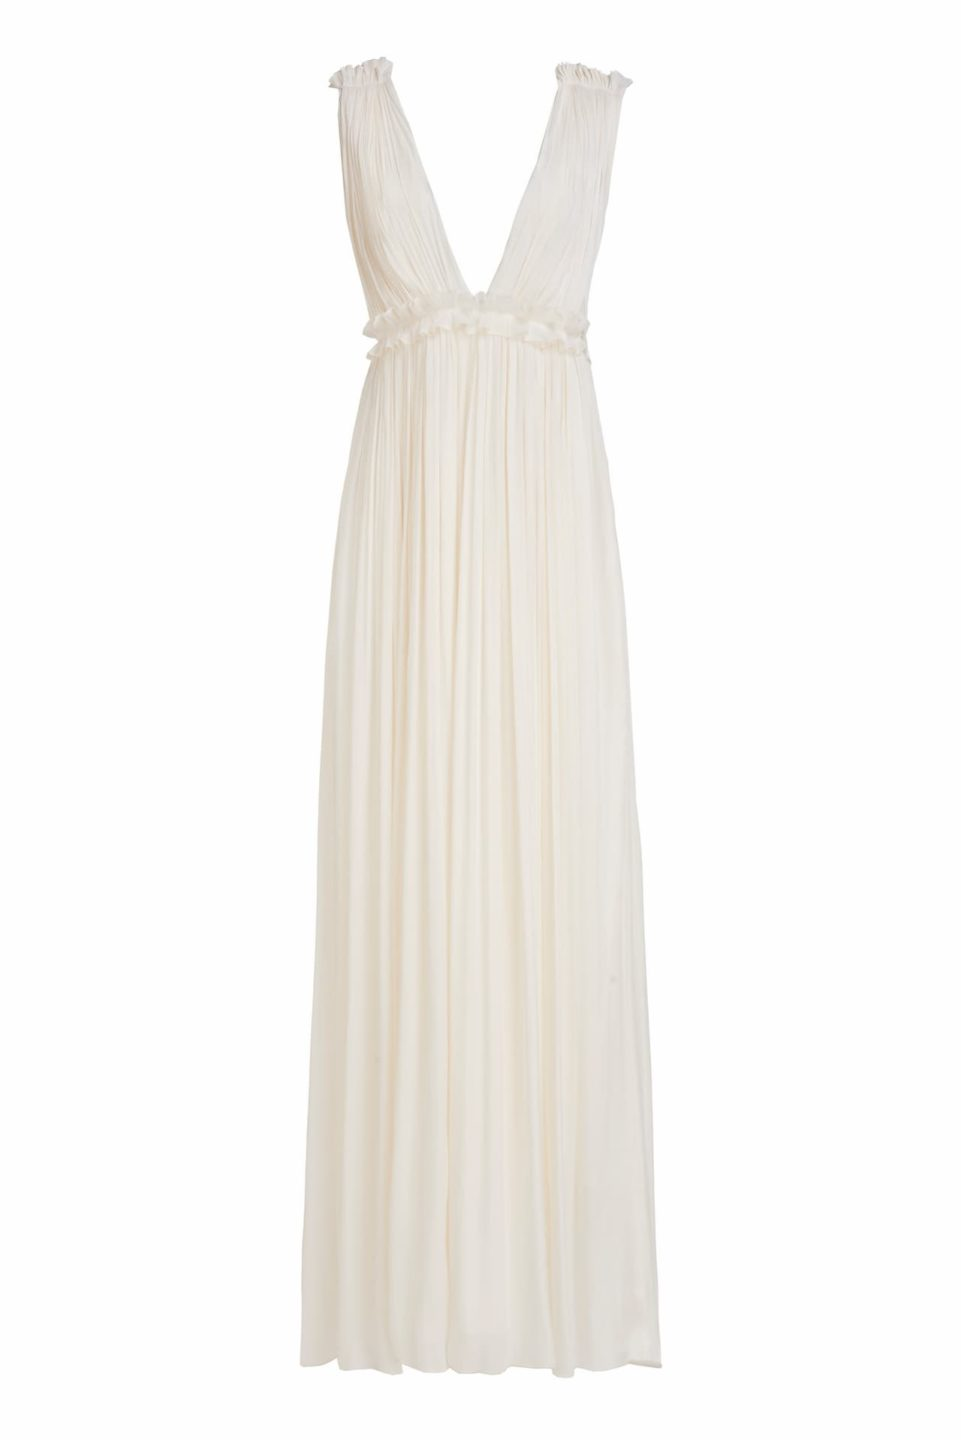 Catalina SS2146 White Iridescent Lurex Georgette Grecian Draped Gown with Double Edged Ruffle